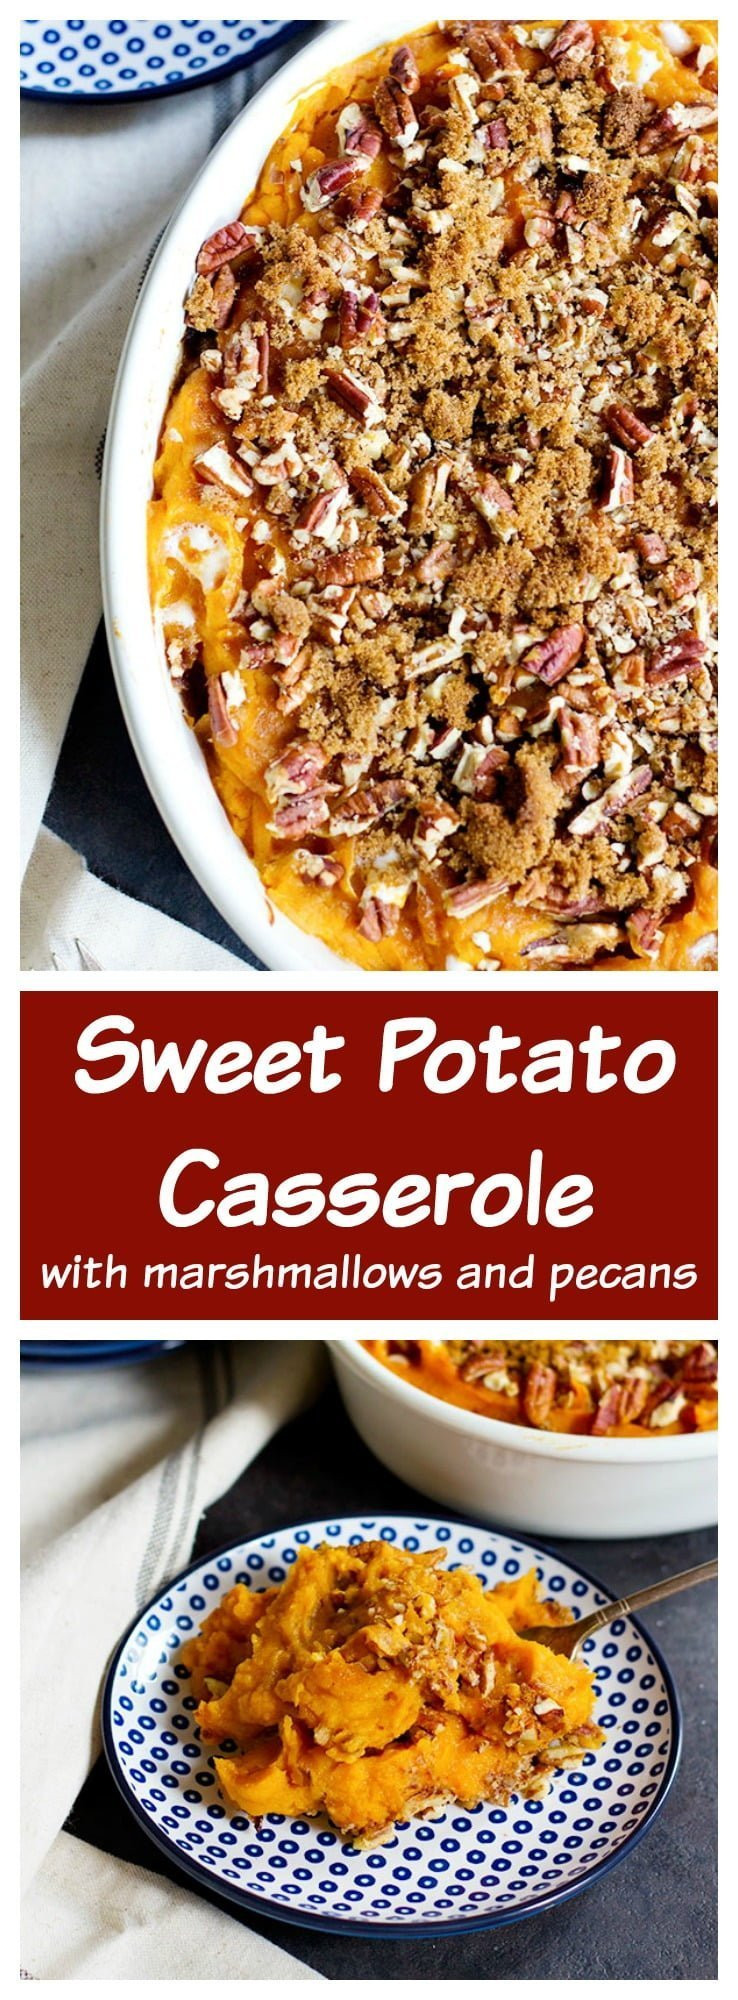 Sweet Potato Casserole With Marshmallows And Pecans  Sweet Potato Casserole with Pecans • Unicorns in the Kitchen